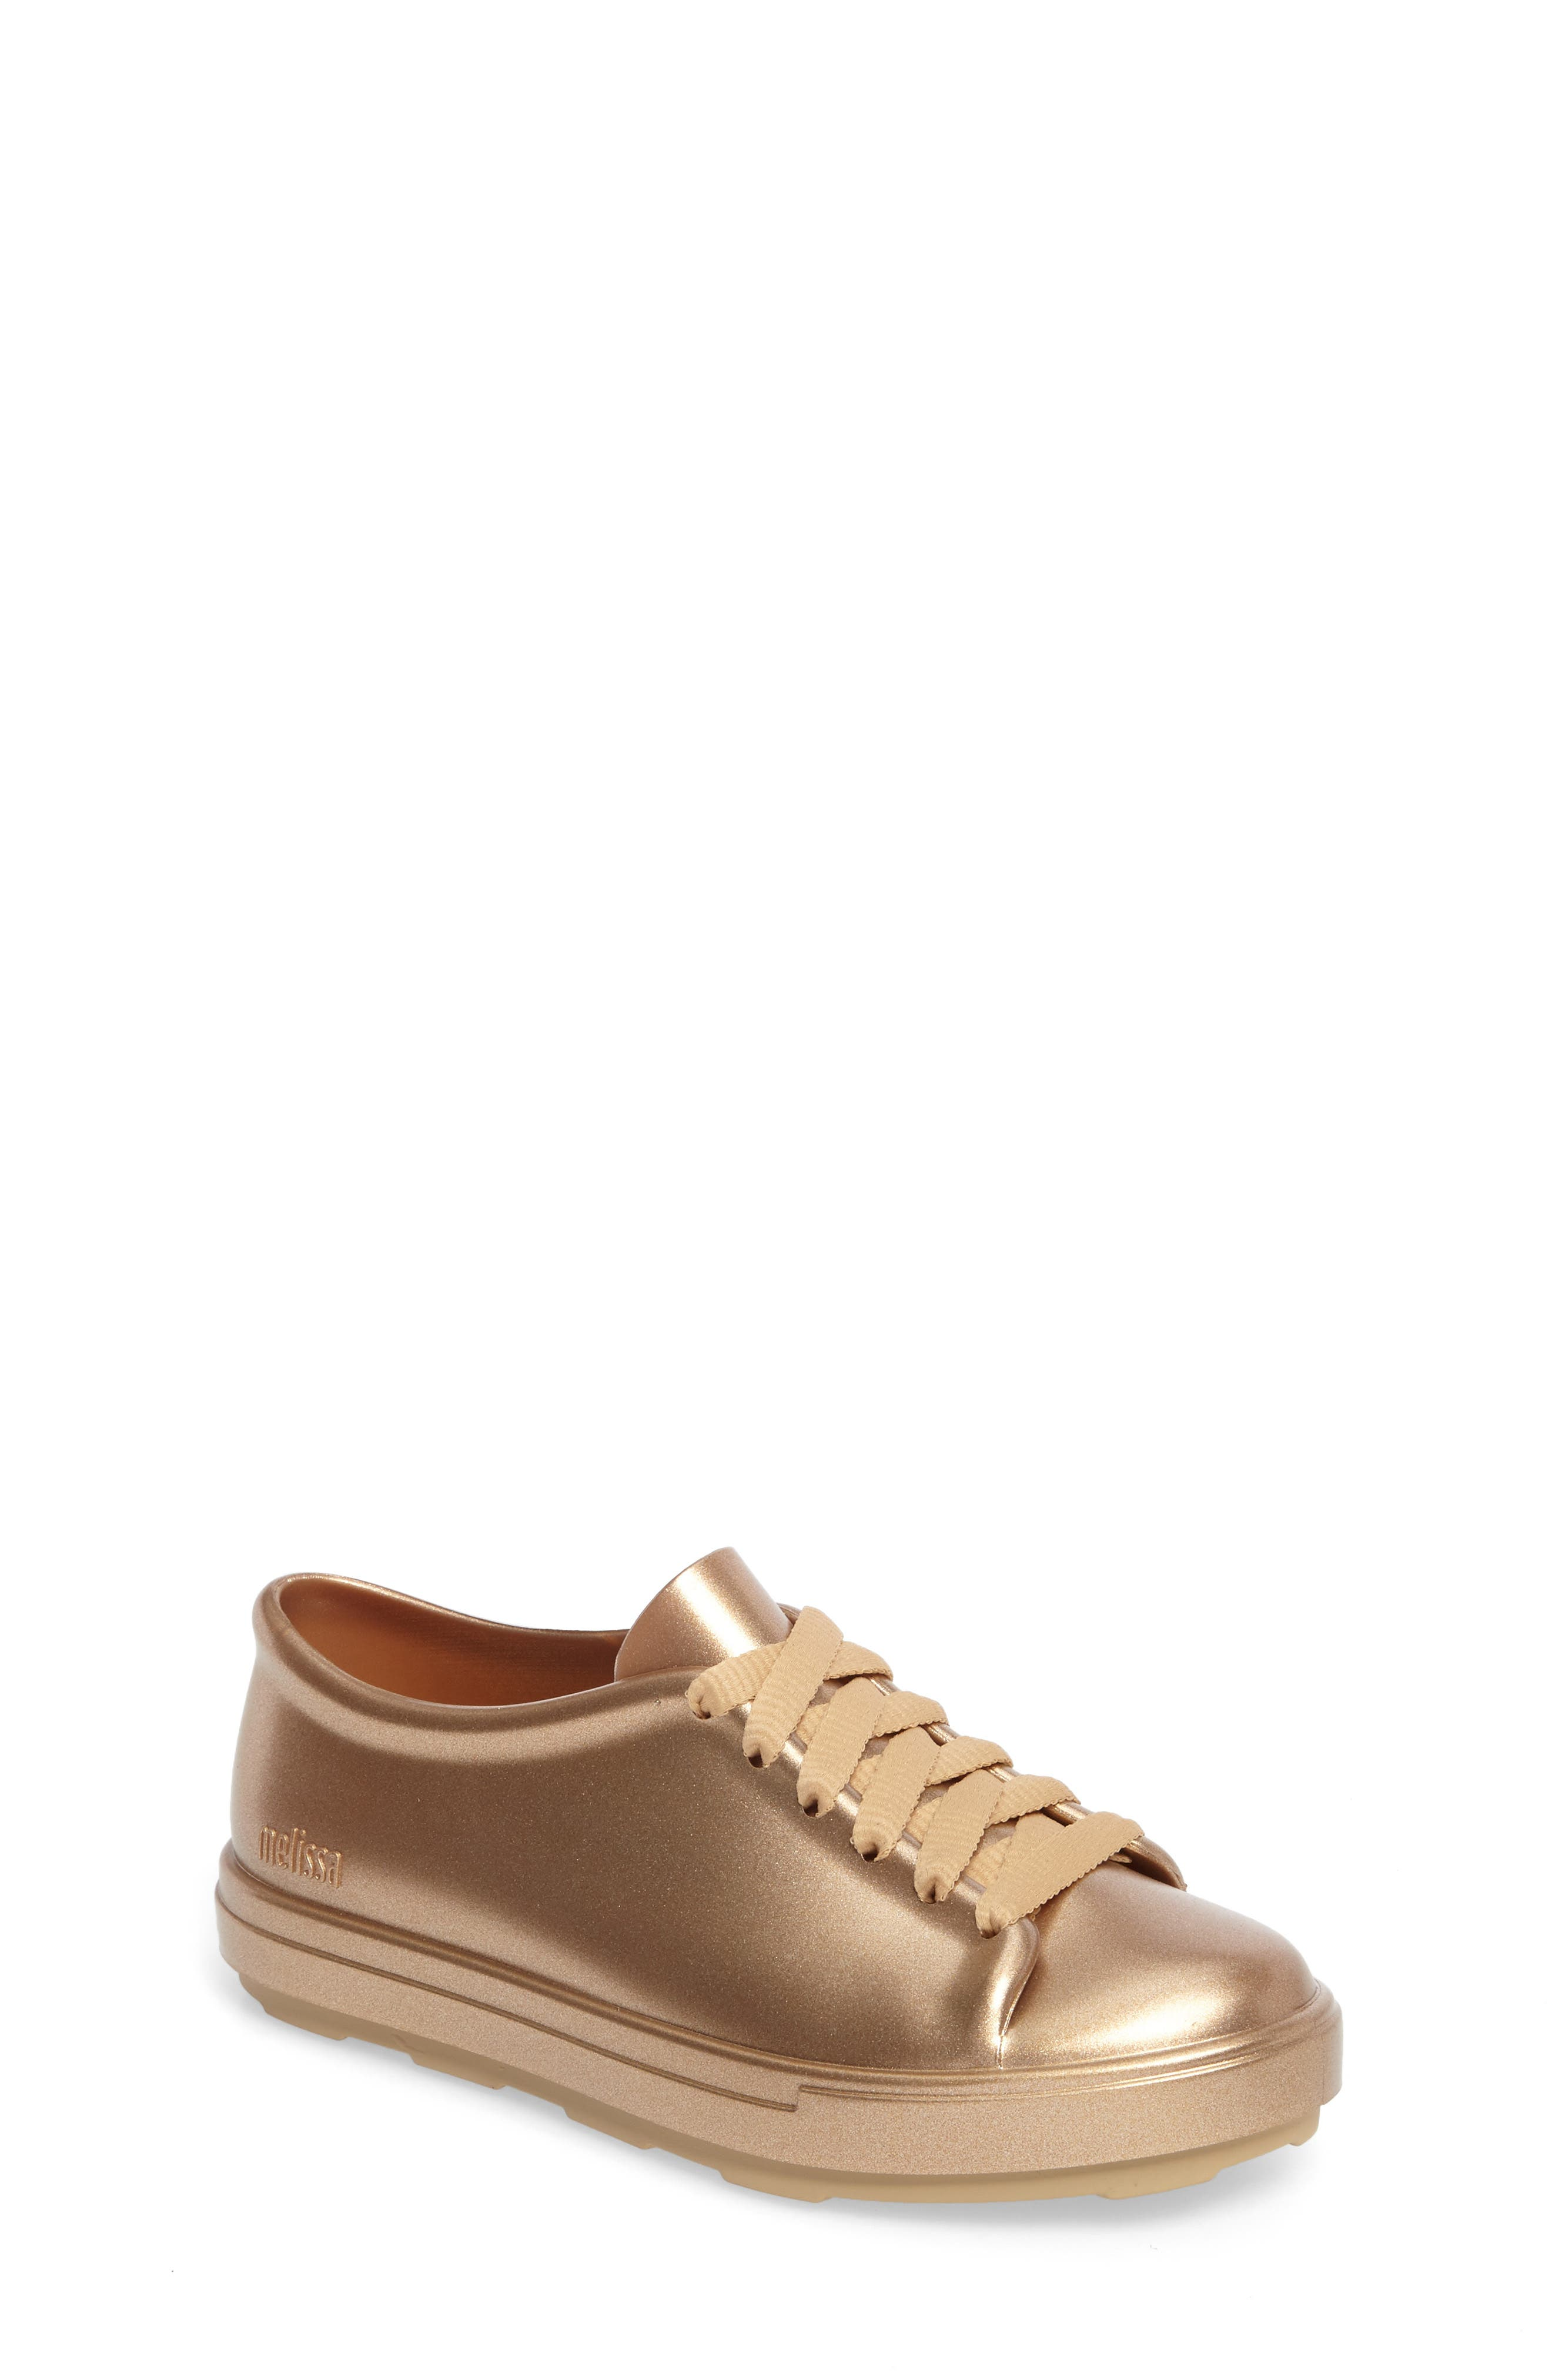 Be Shine Sneaker,                         Main,                         color, Gold